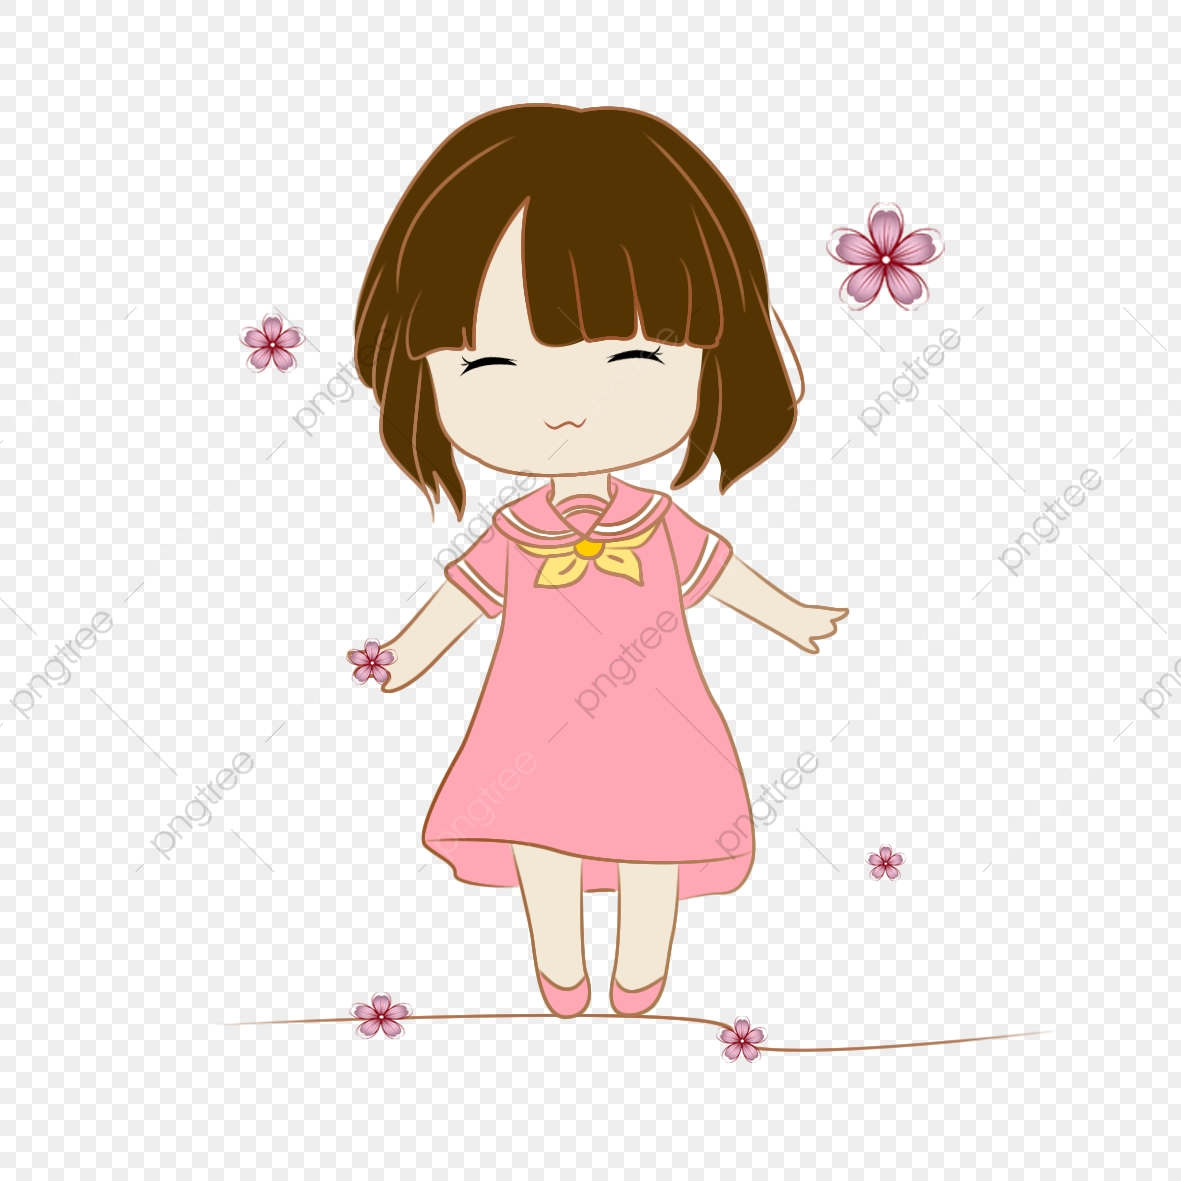 Anime clipart small. Cartoon cute girl lovely